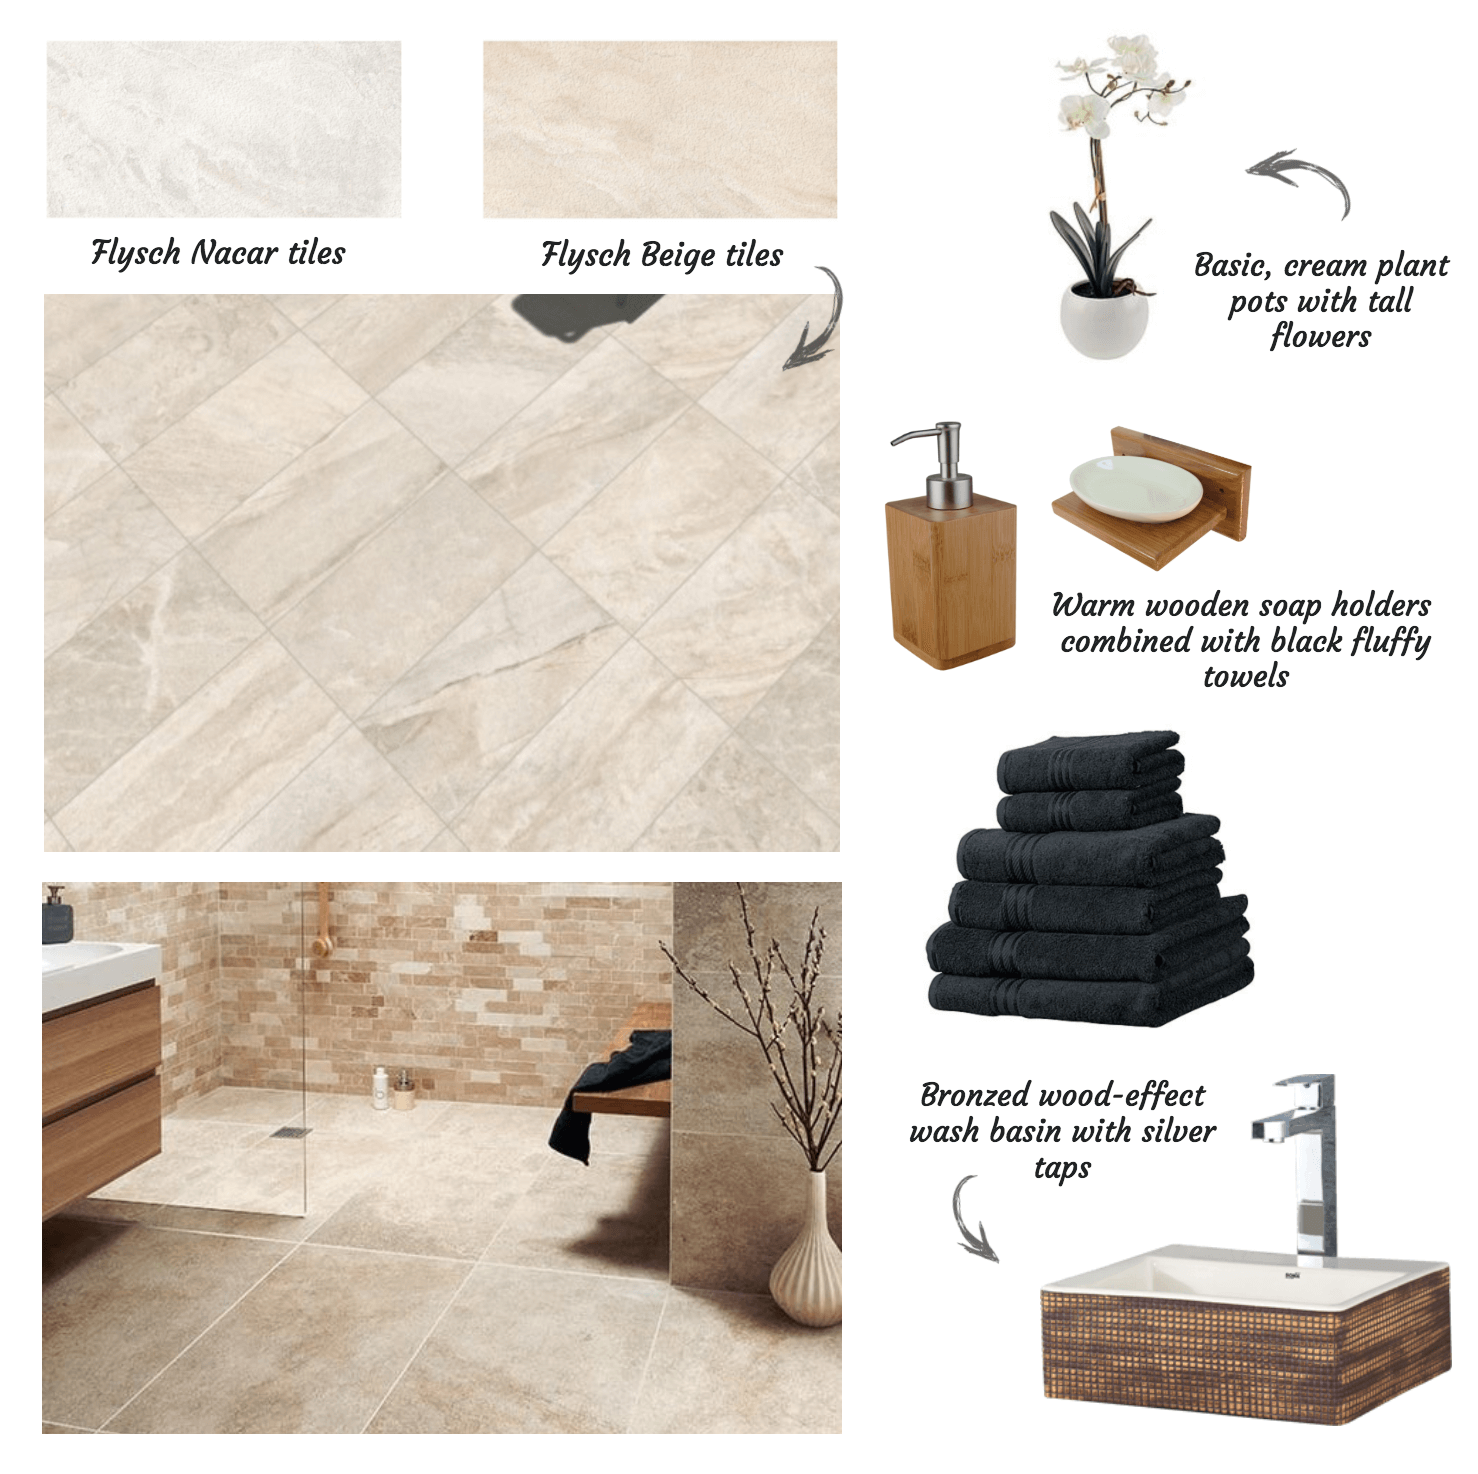 Flysch Tiles For Wet Rooms